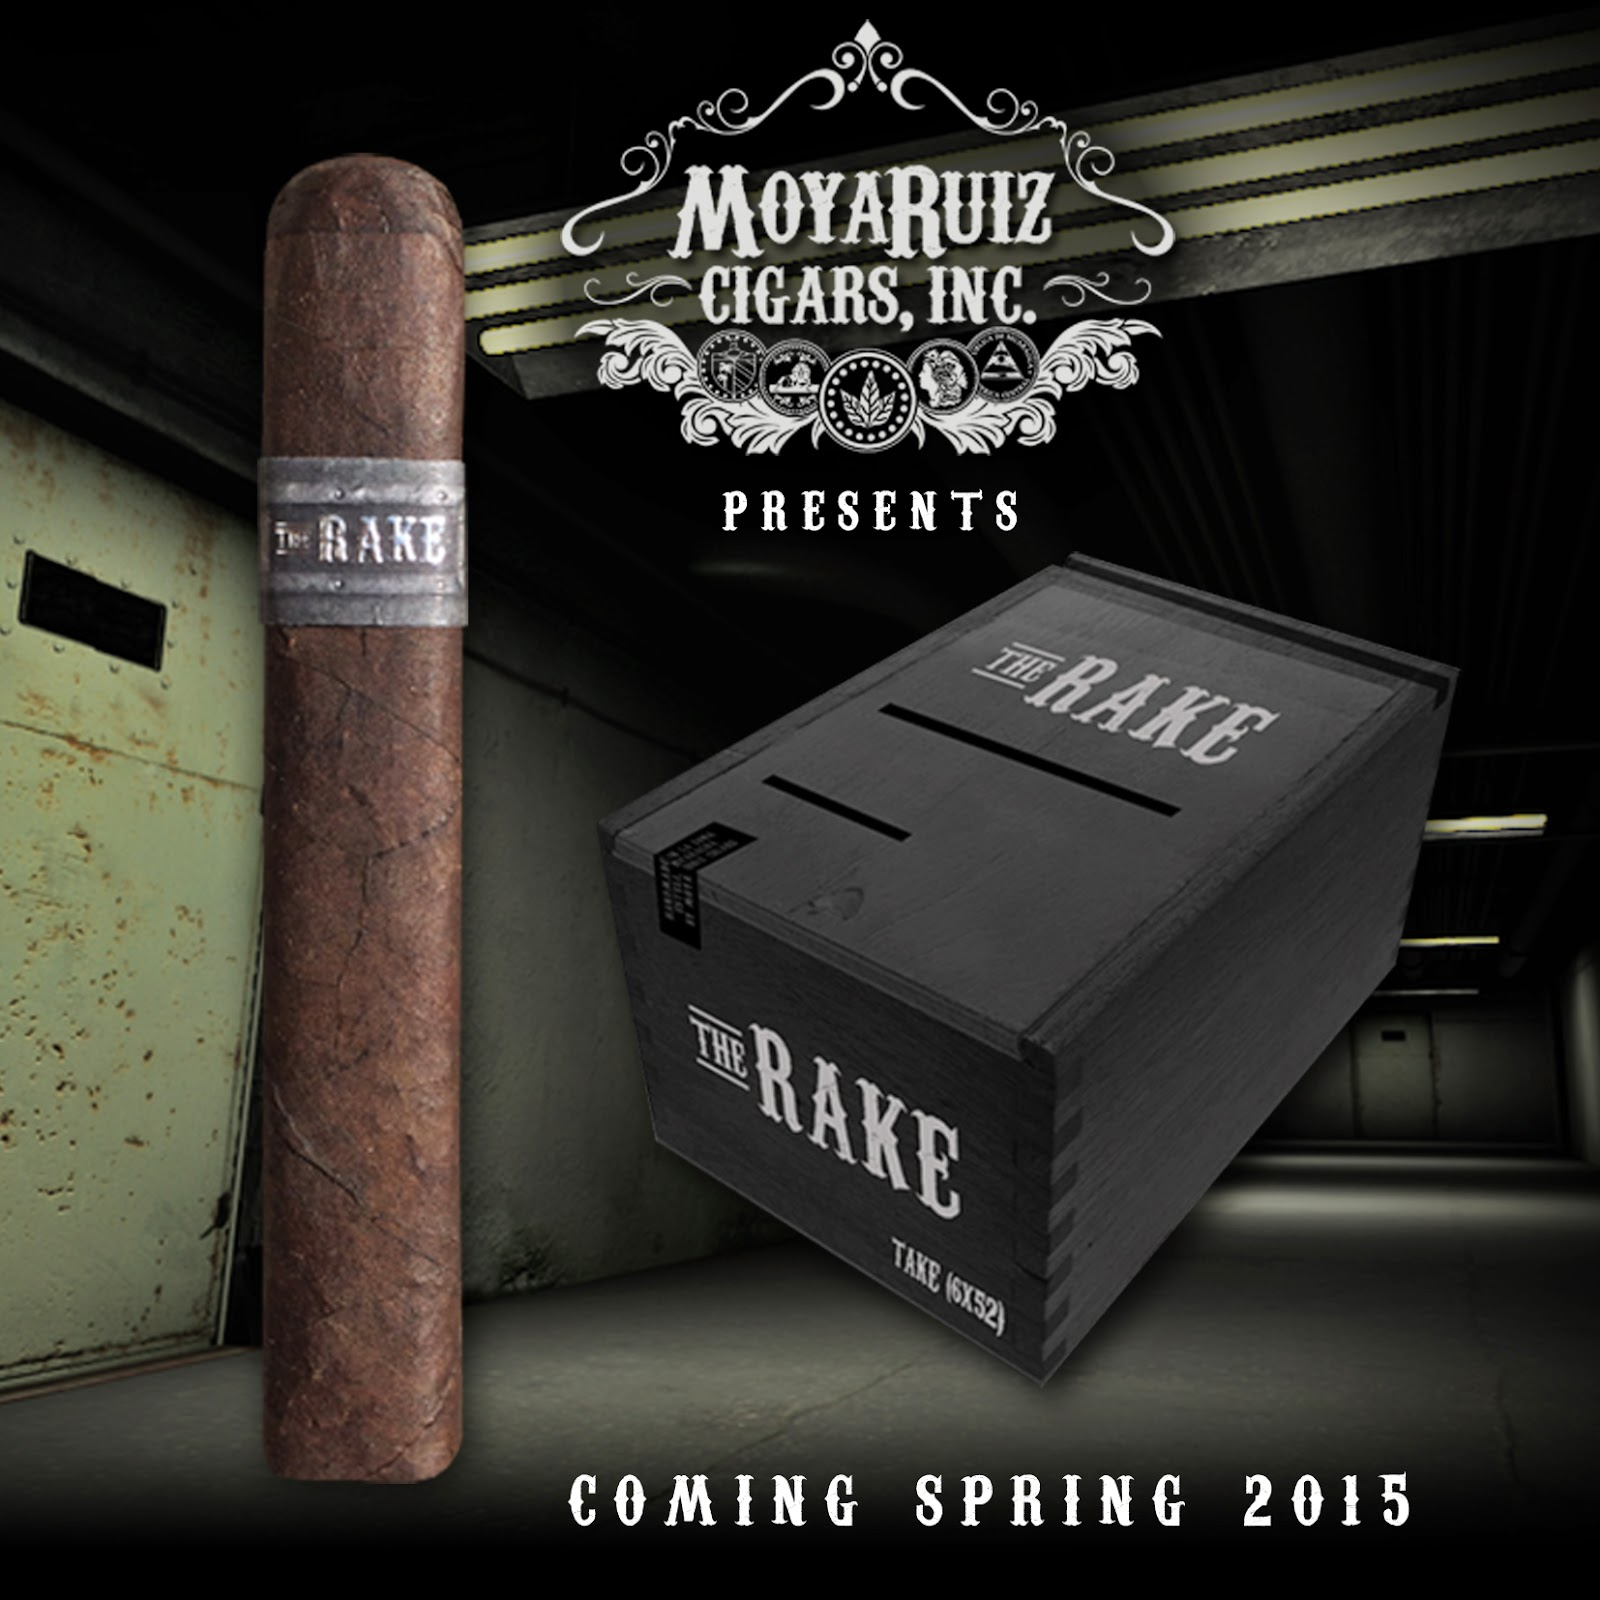 The-Rake-by_MoyaRuiz_Cigars